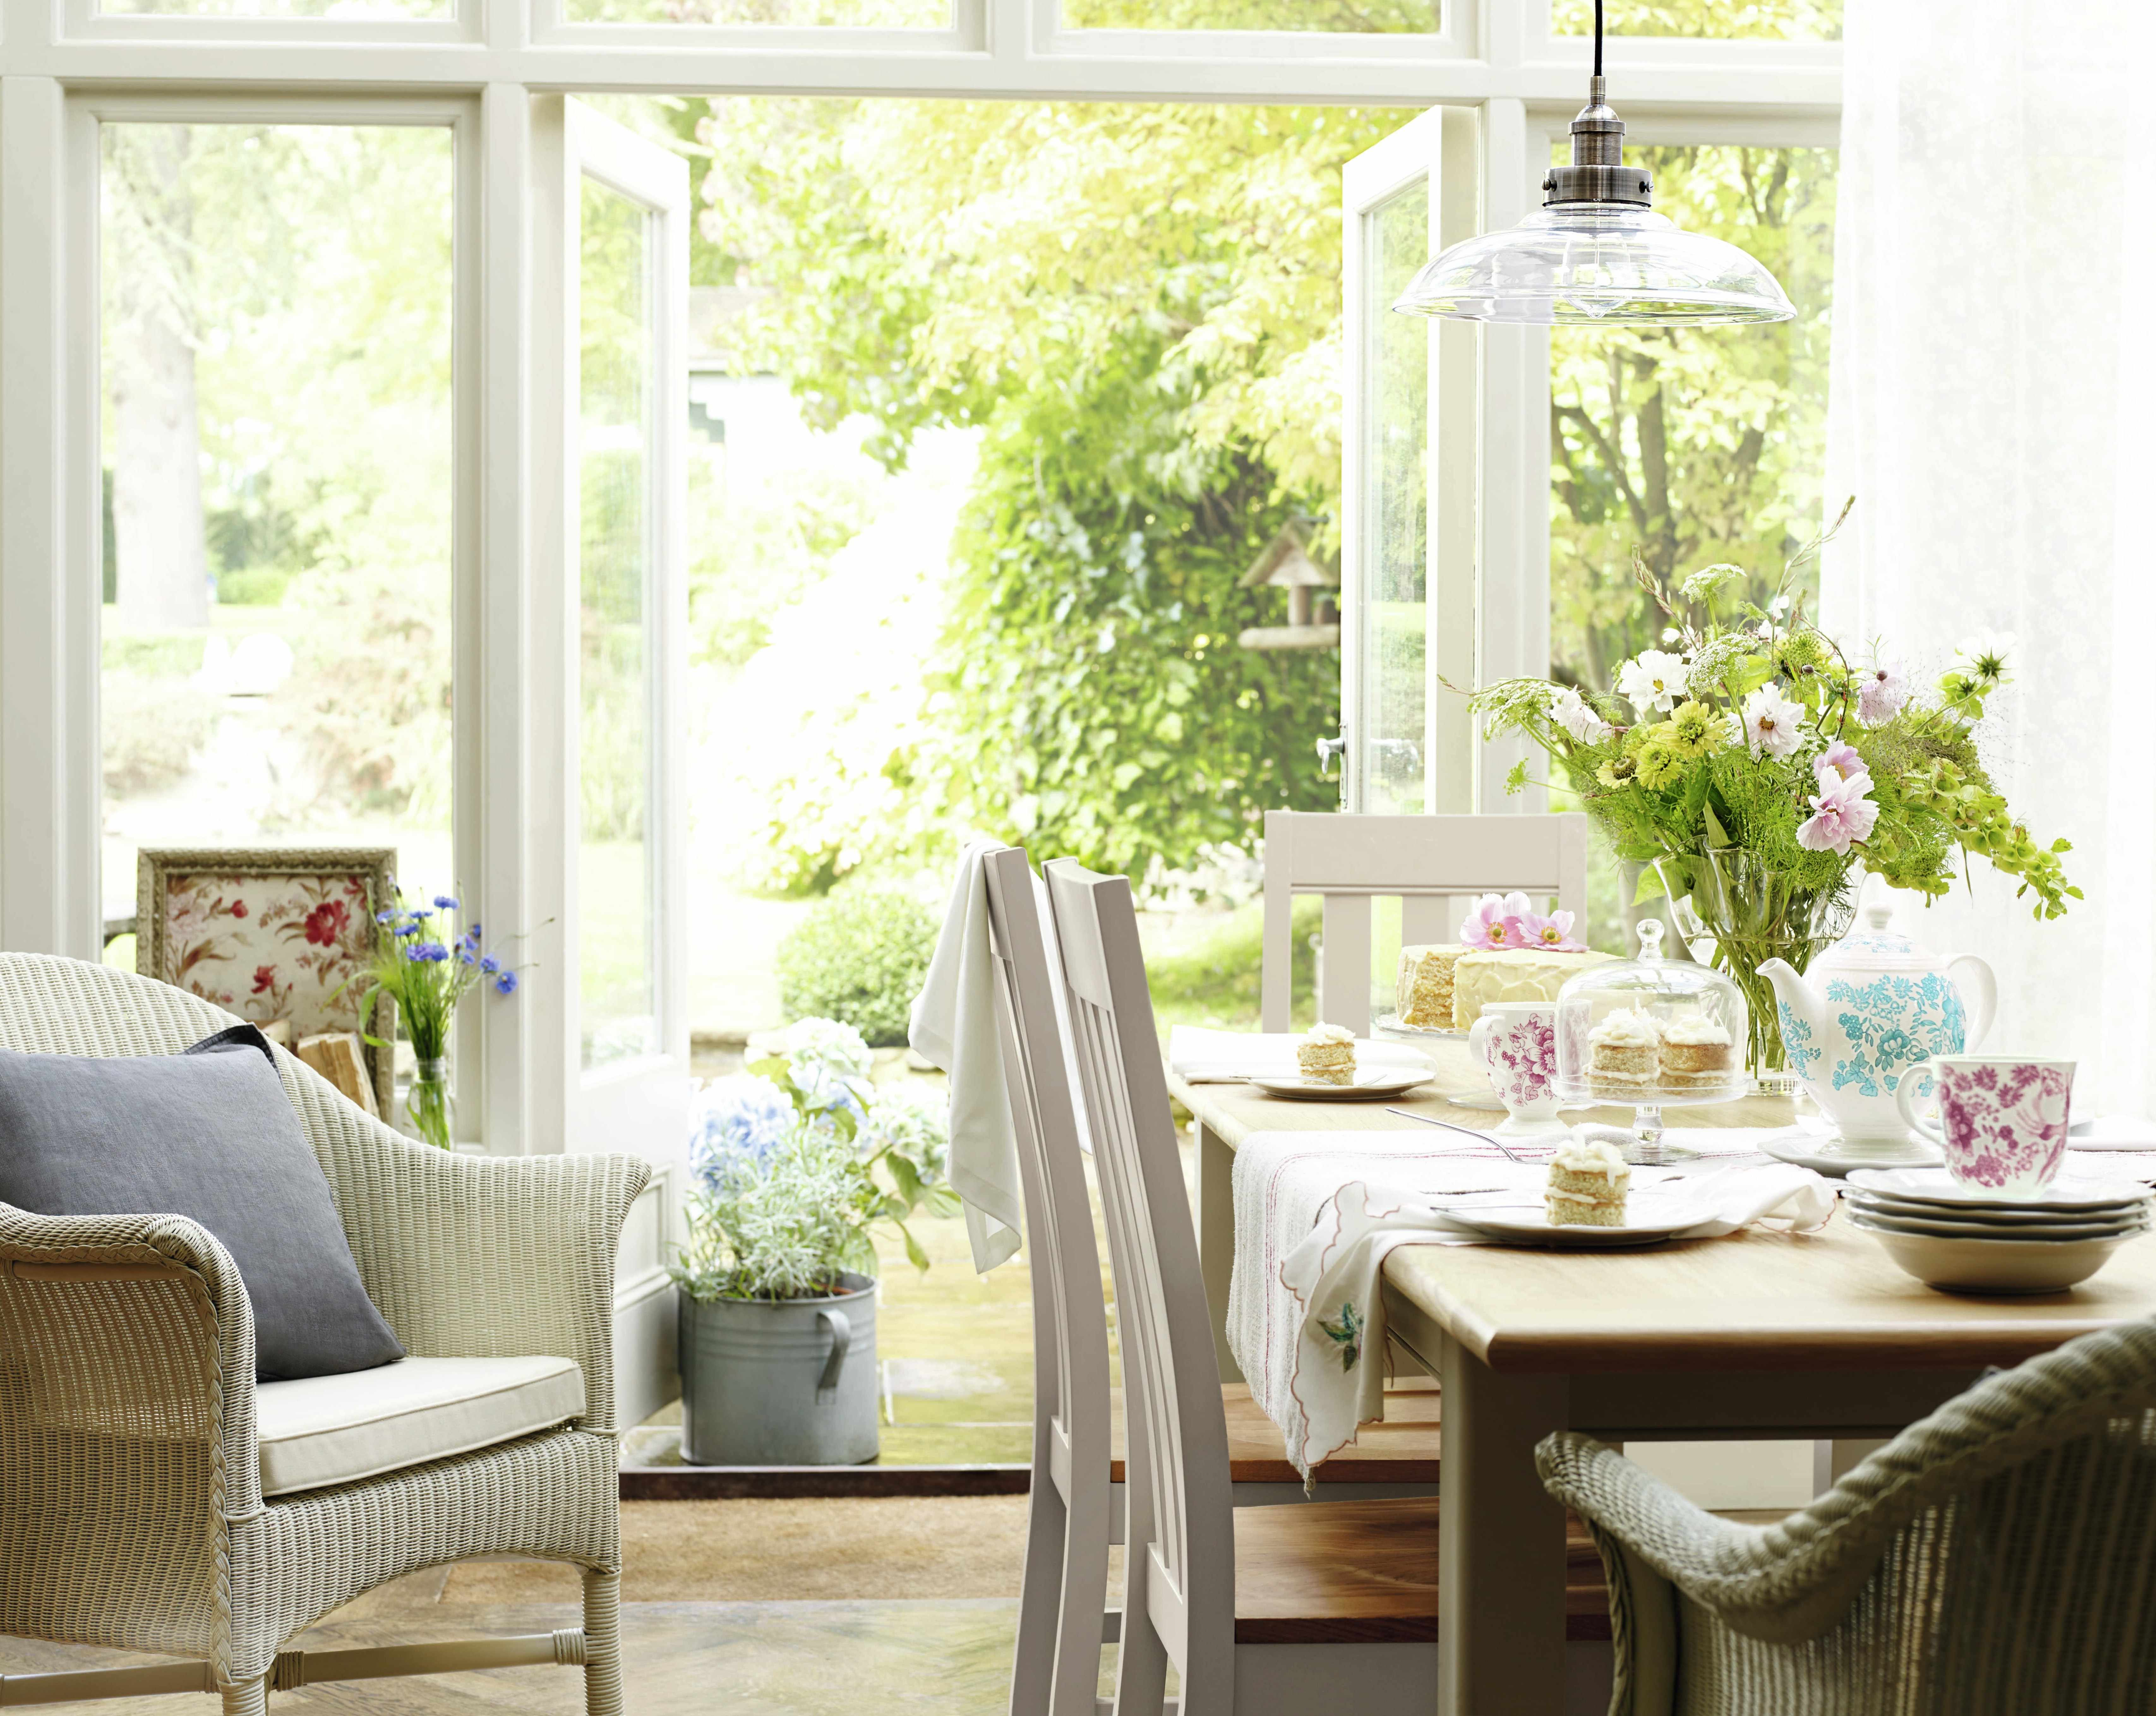 An airy conservatory space with a white dining table and chairs